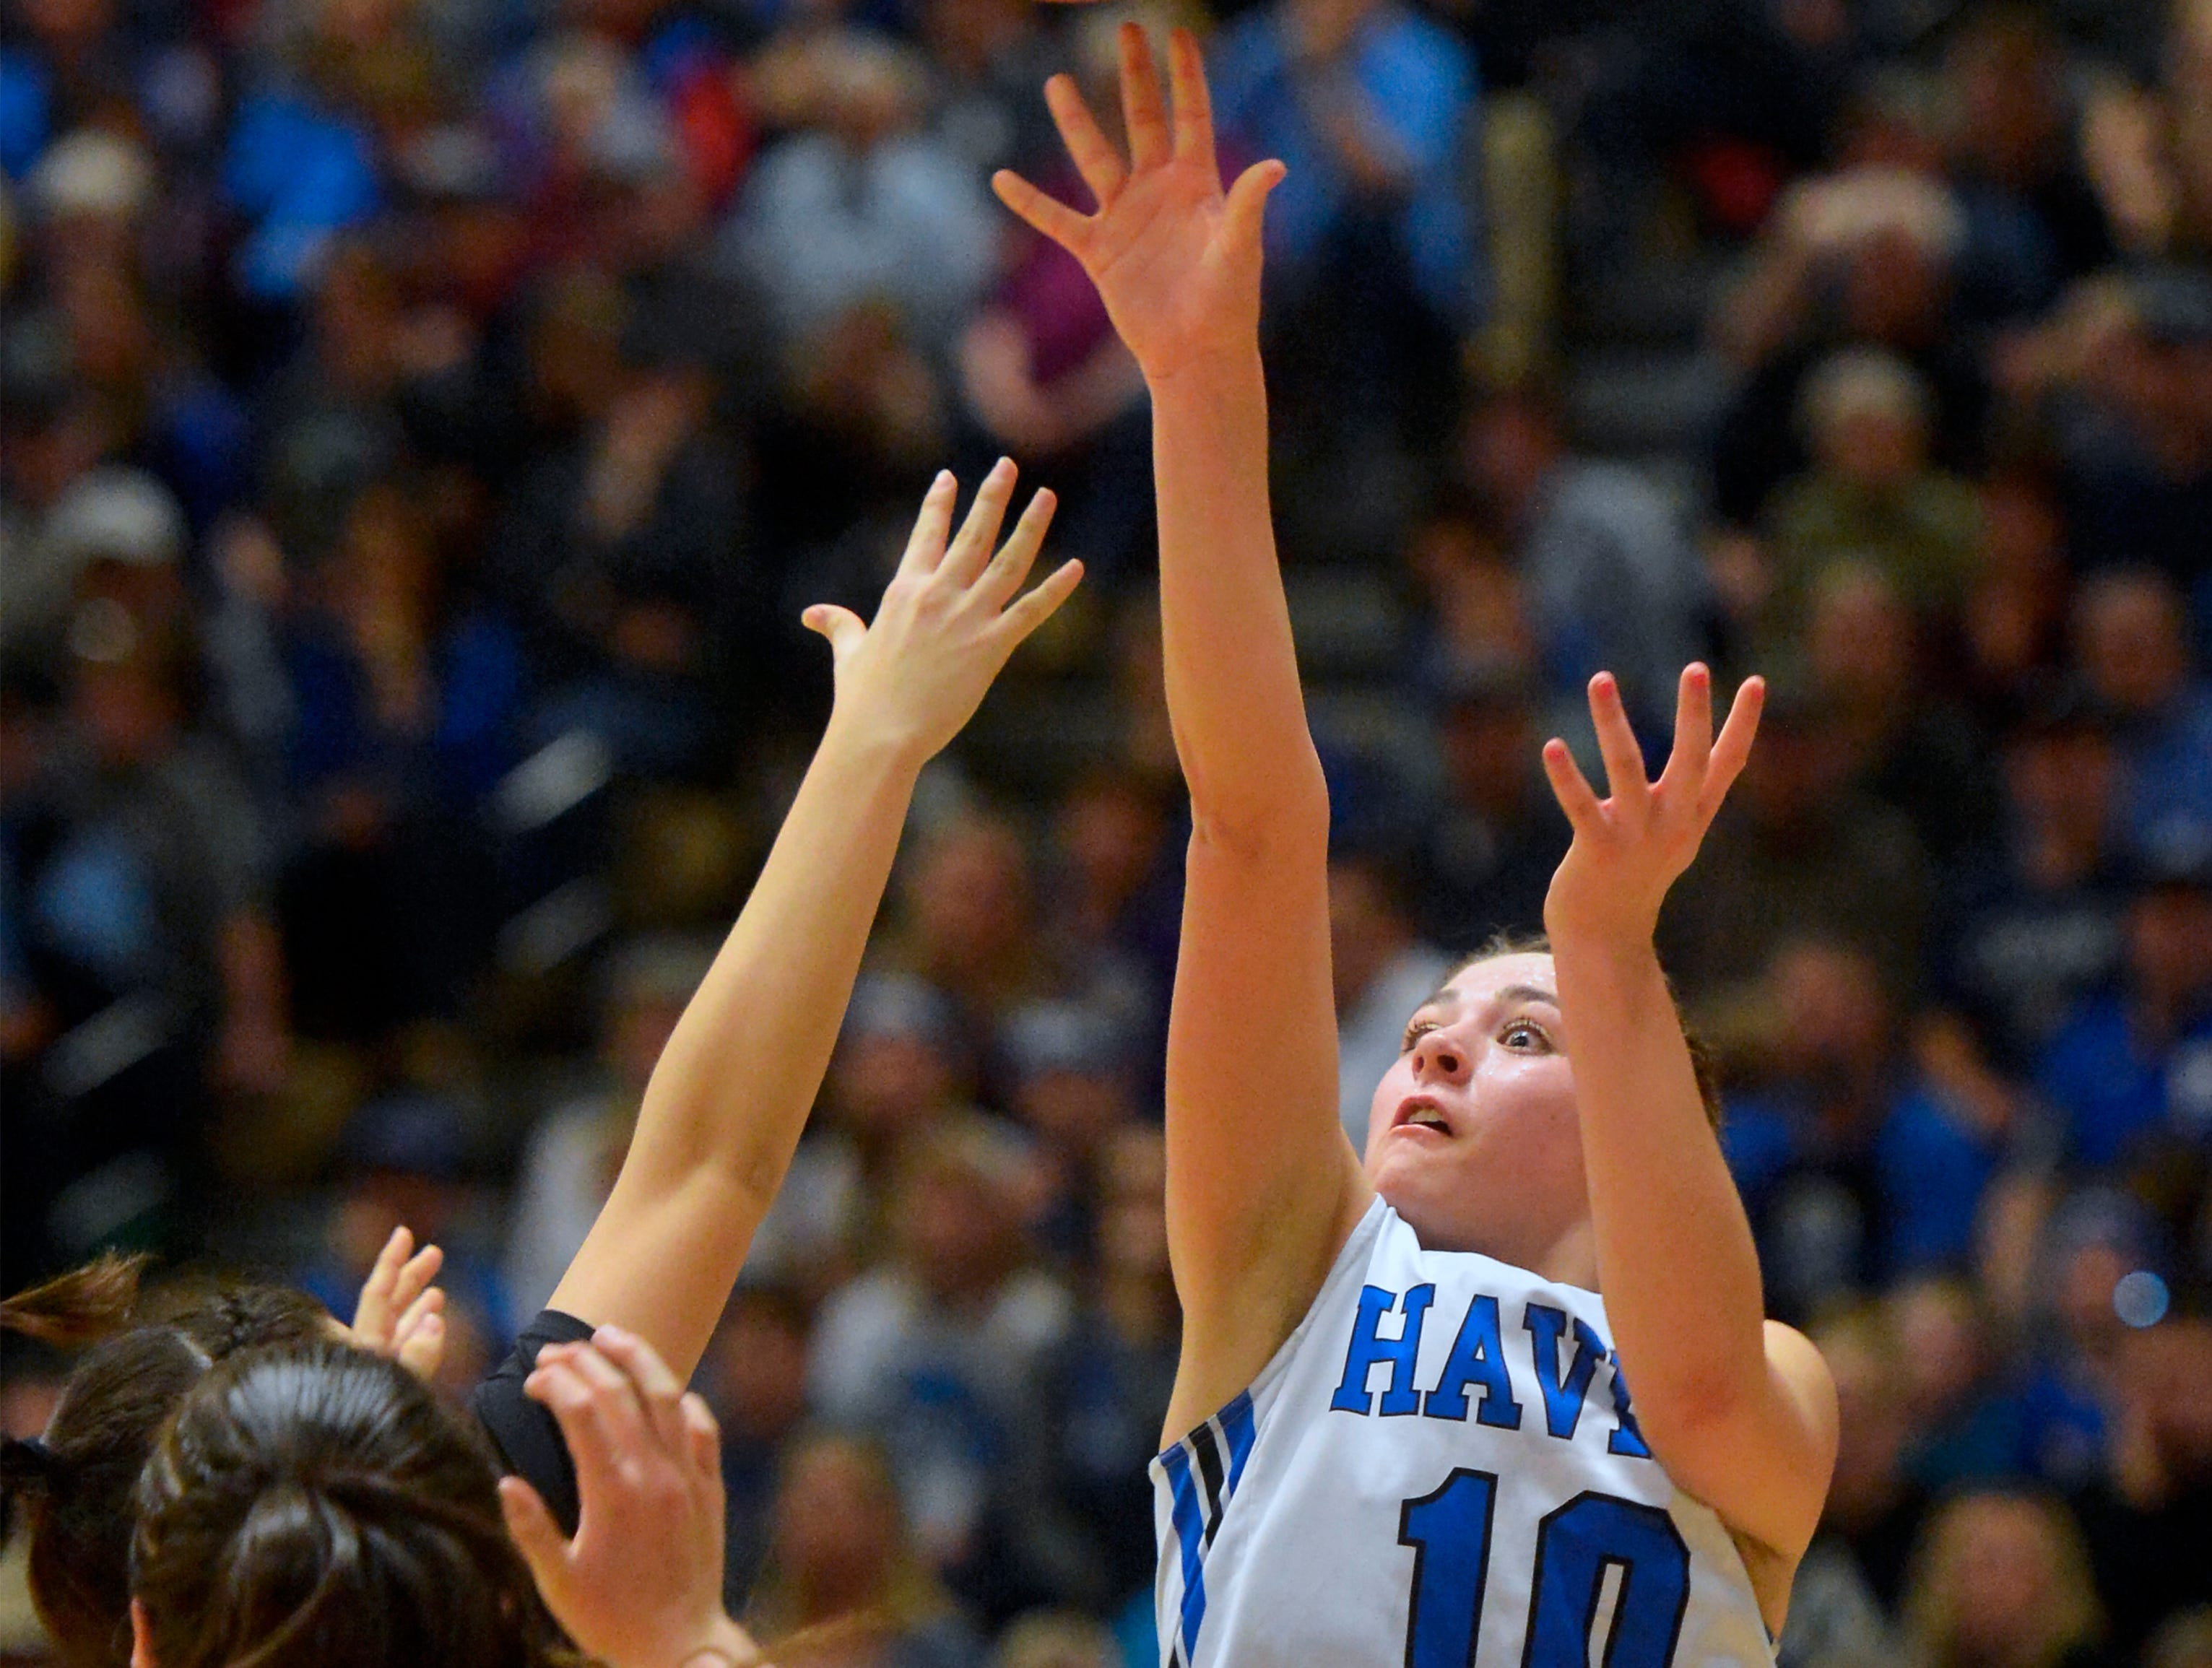 Havre's Kyndall Keller shoots in the championship game of the State Class A Basketball Tournament in the Four Seasons Arena, Saturday.